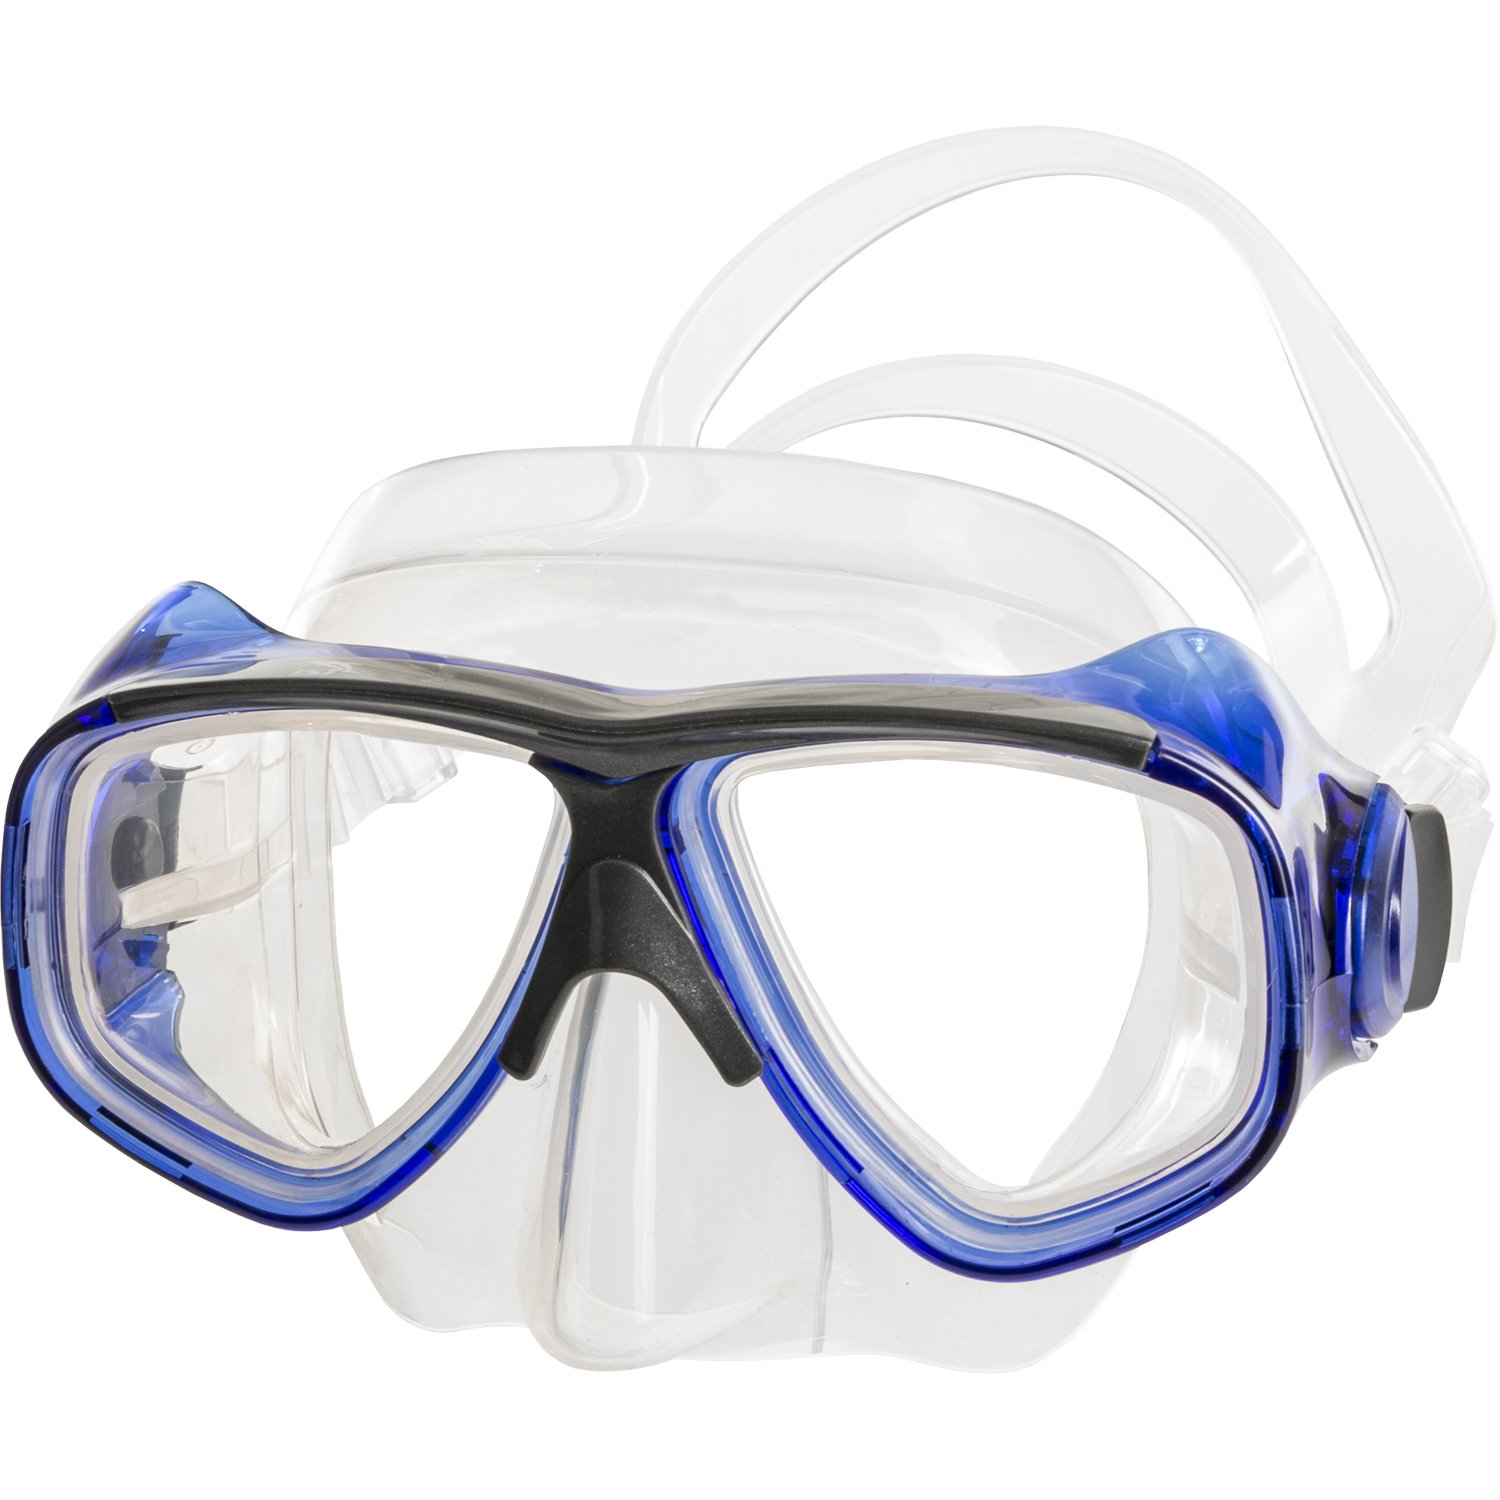 IST RX Prescription Scuba Diving Mask (Clear Blue, Nearsight -3.5) by IST